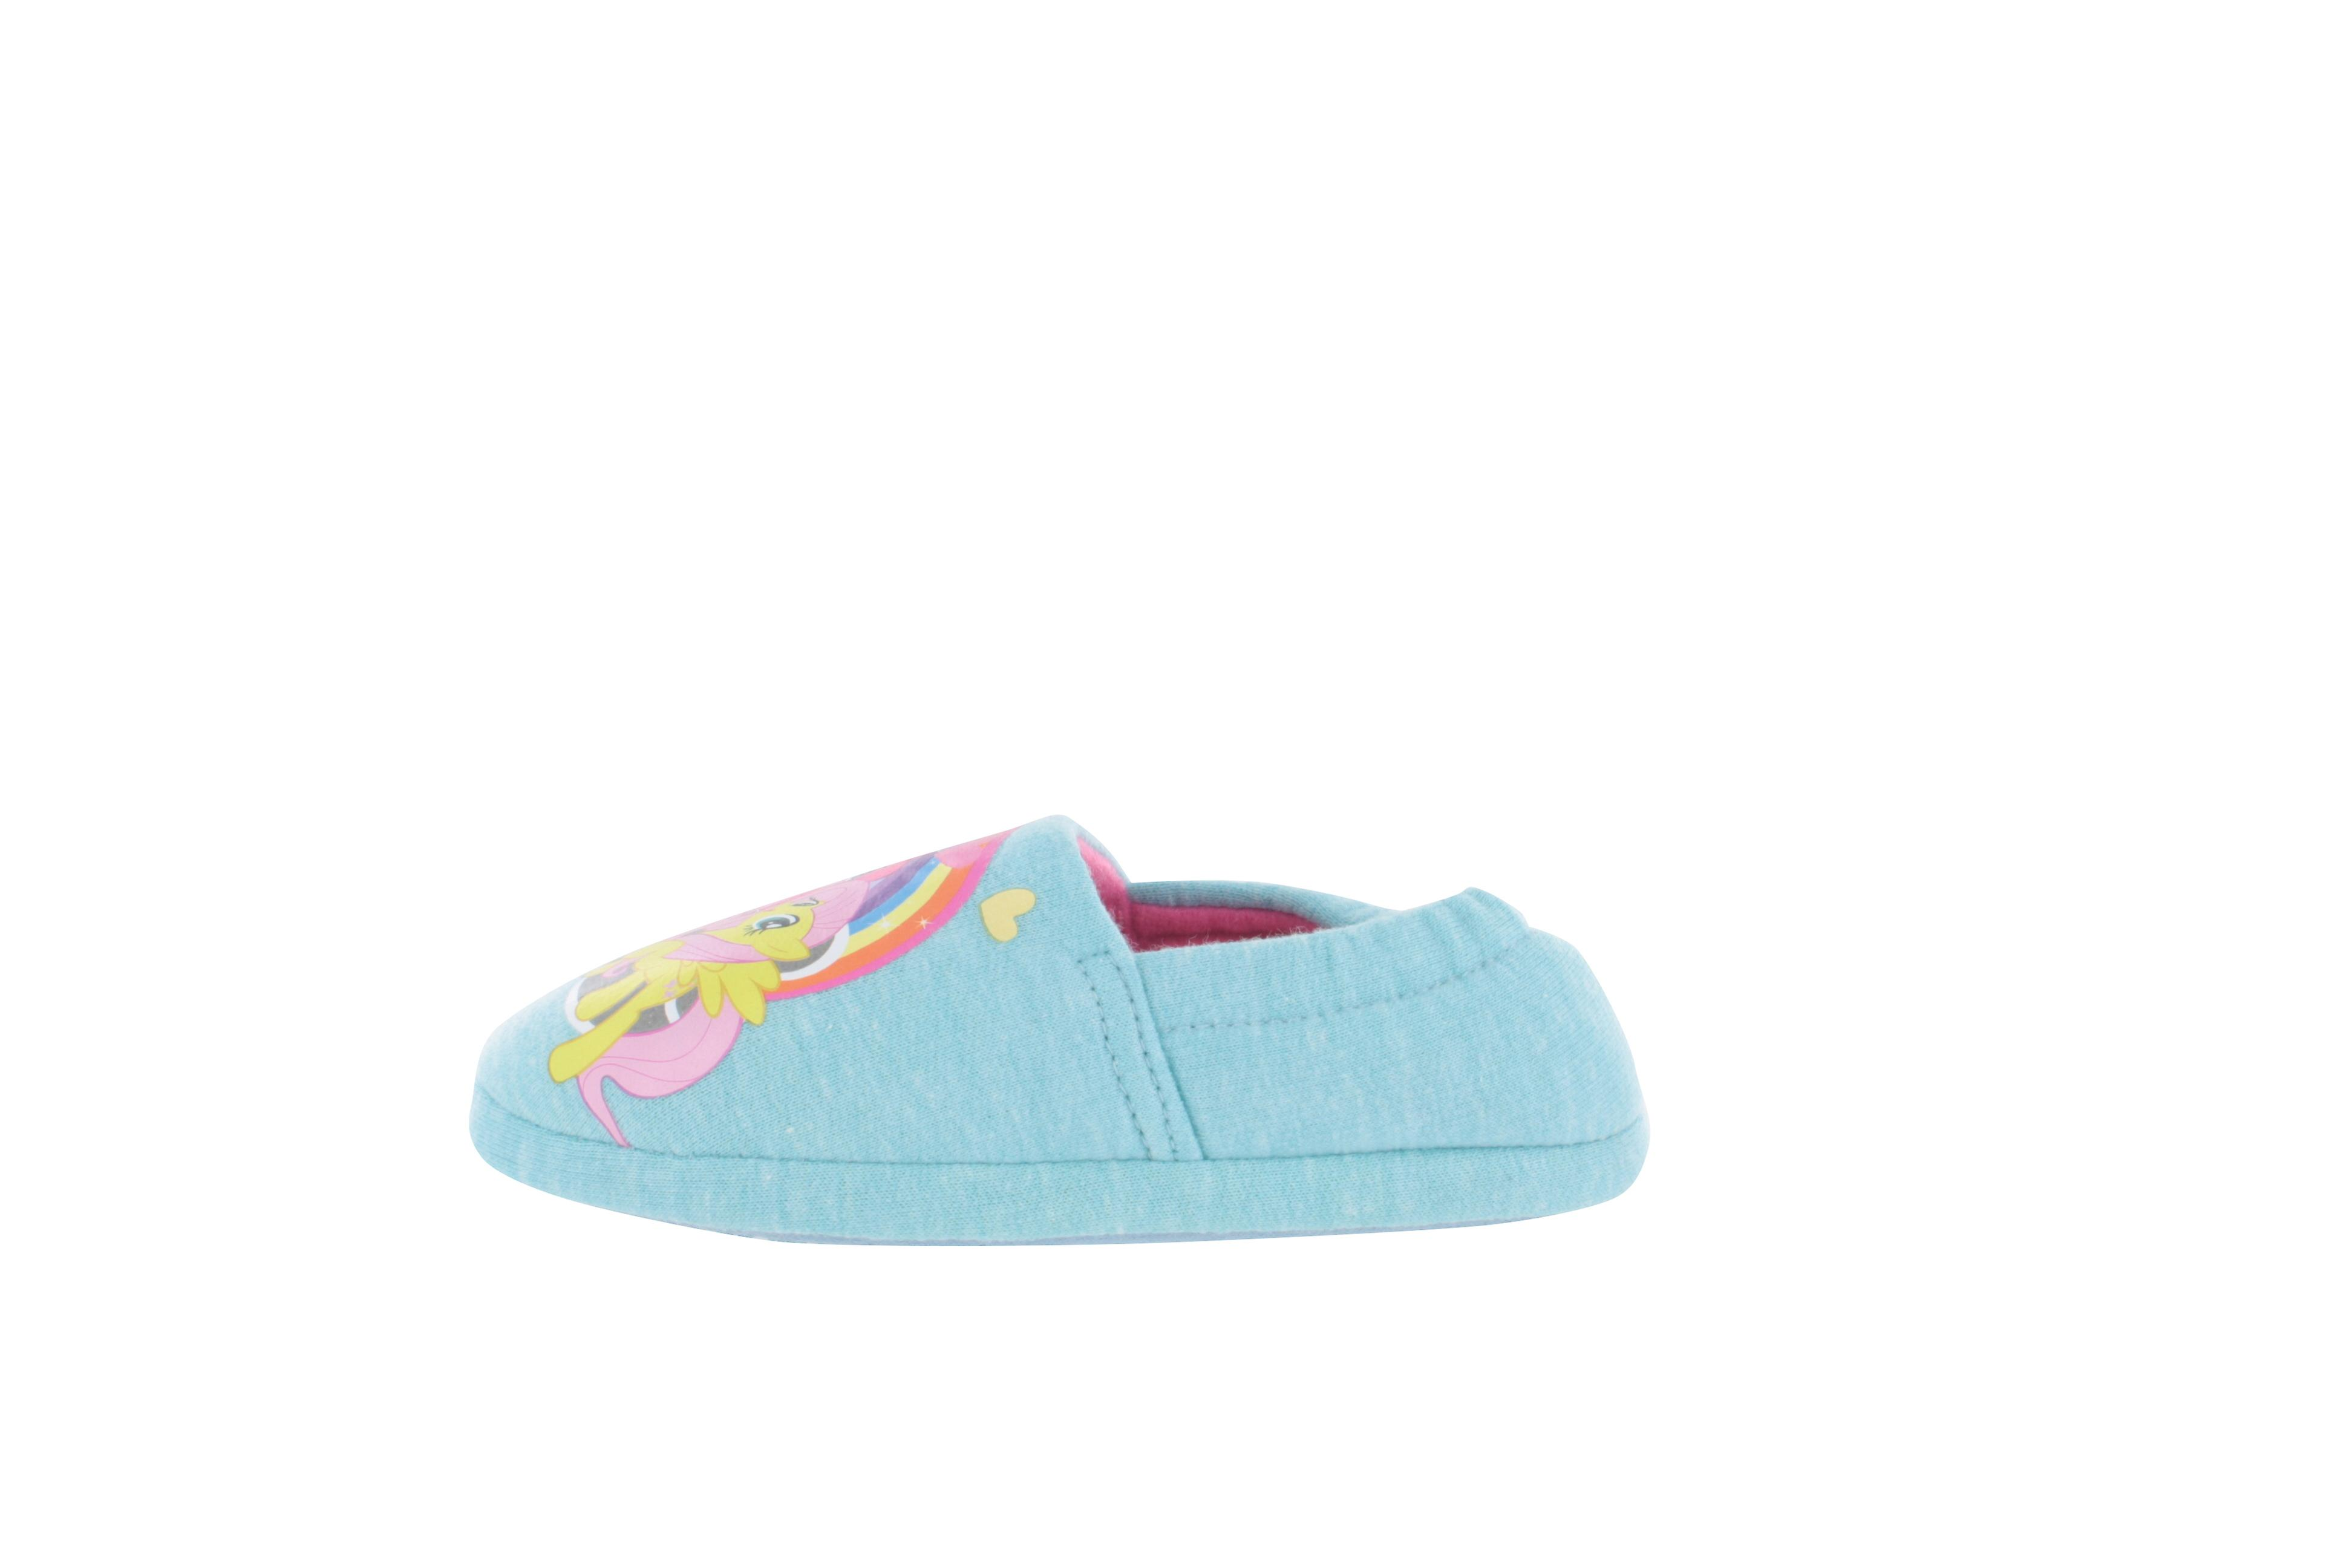 My Little Pony Lilibeth Slippers Blue Girls Kids Various Sizes 6 to 12